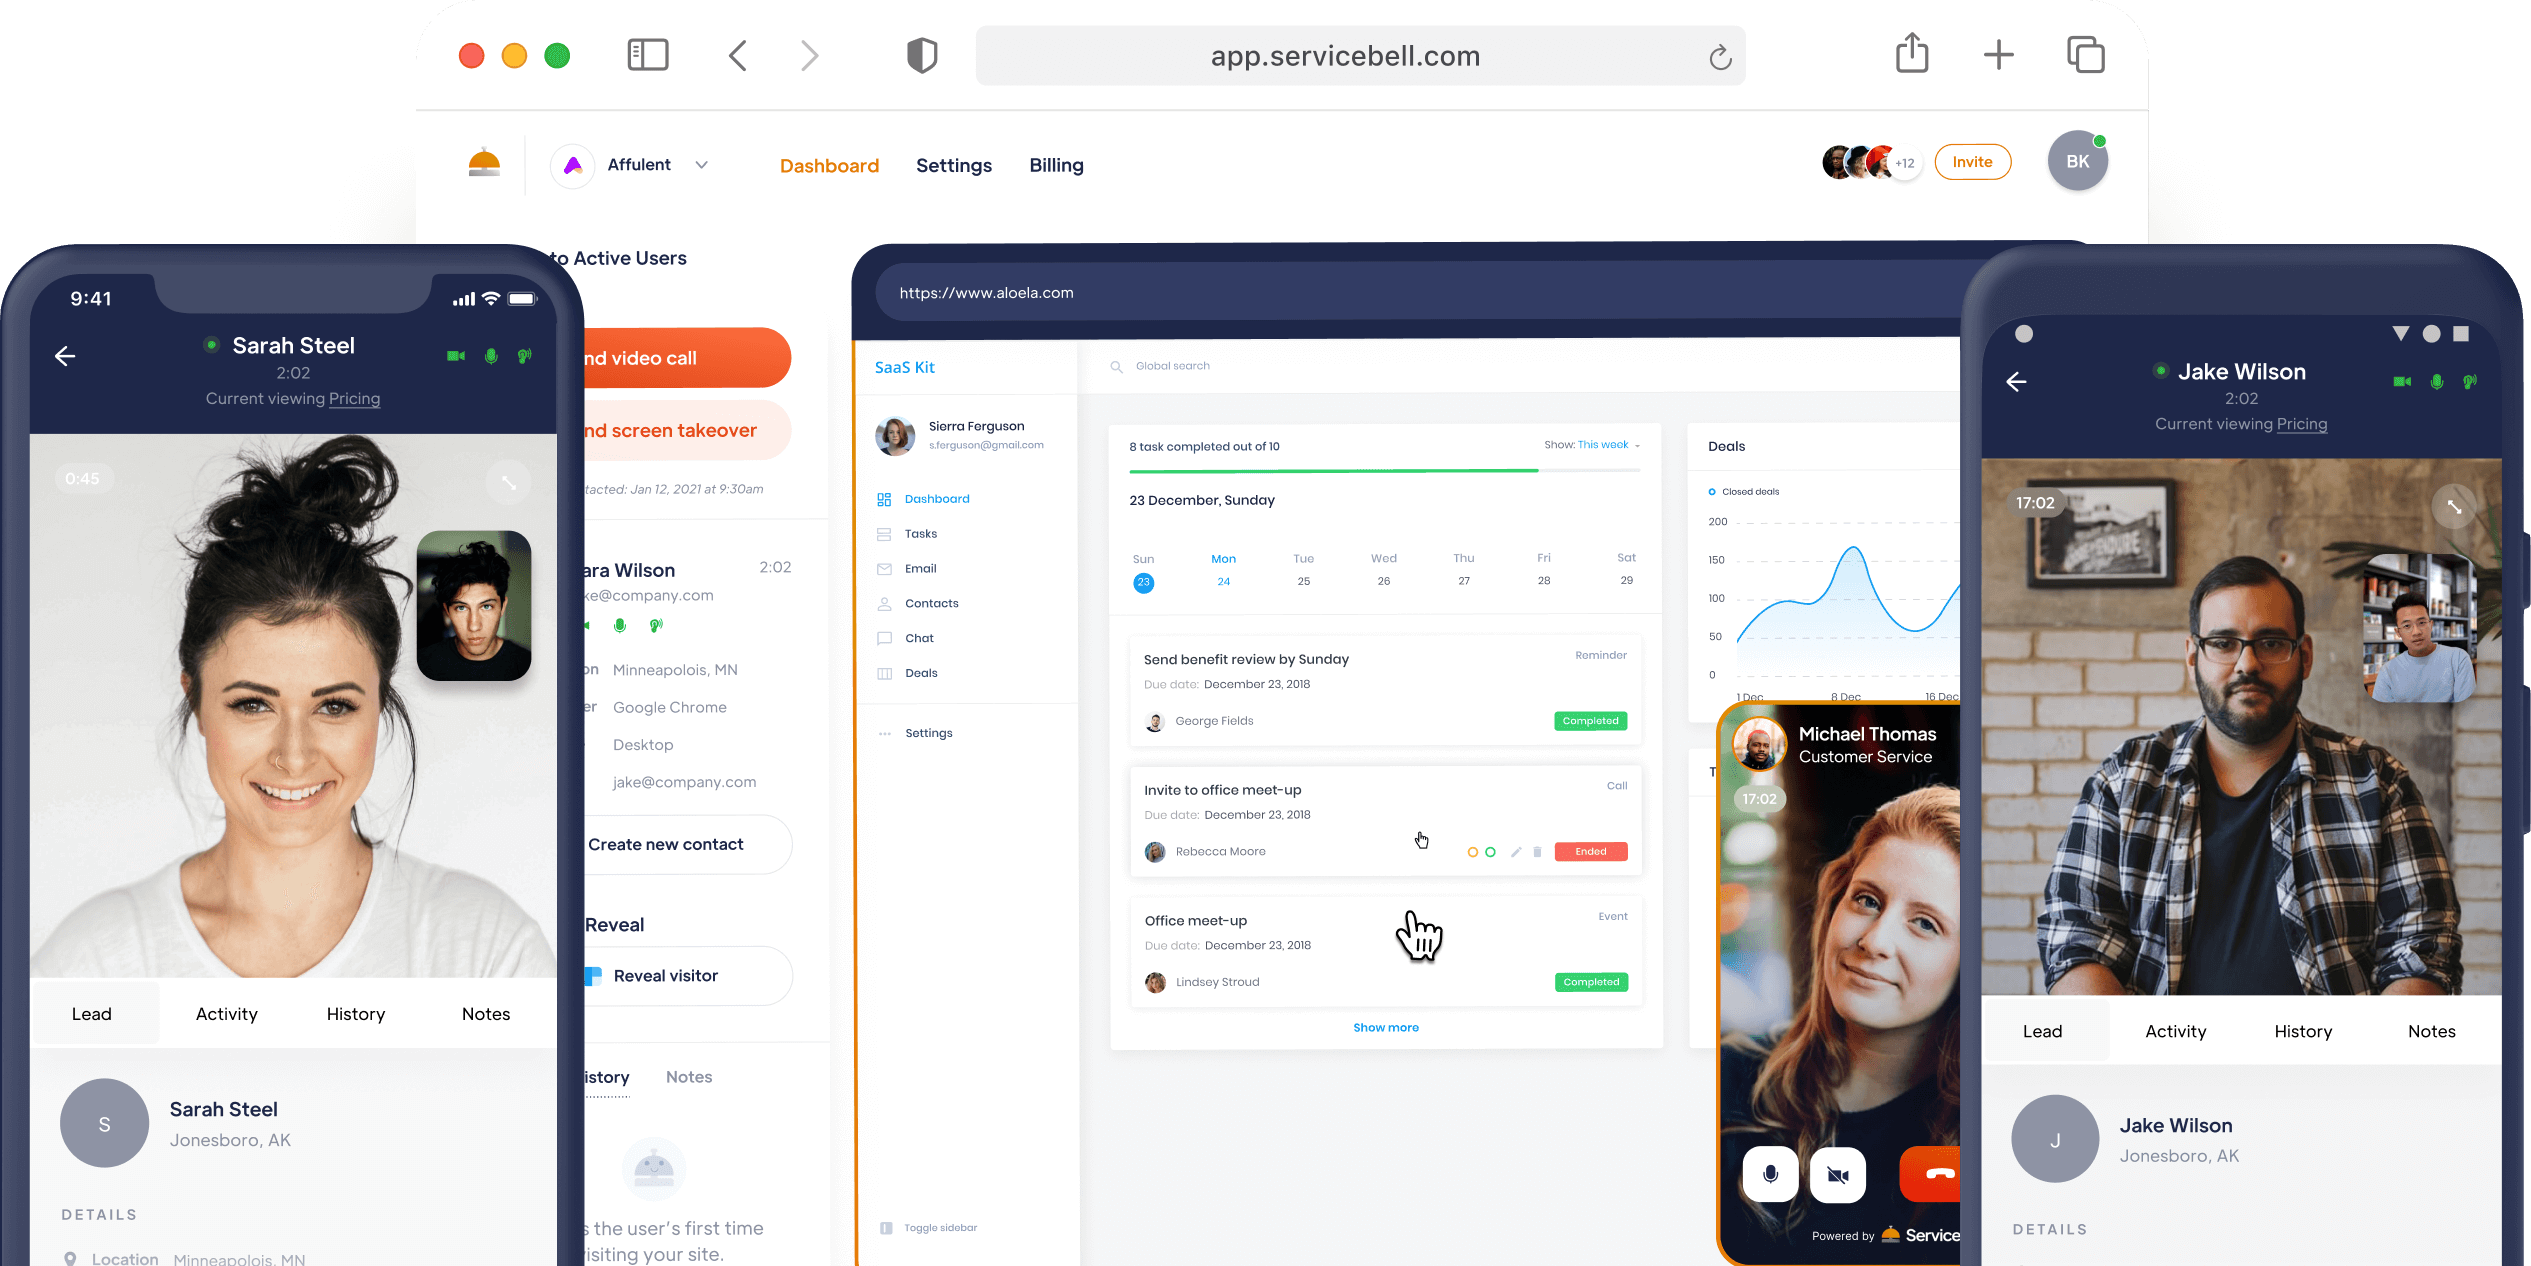 Announcing ServiceBell for iOS and Android